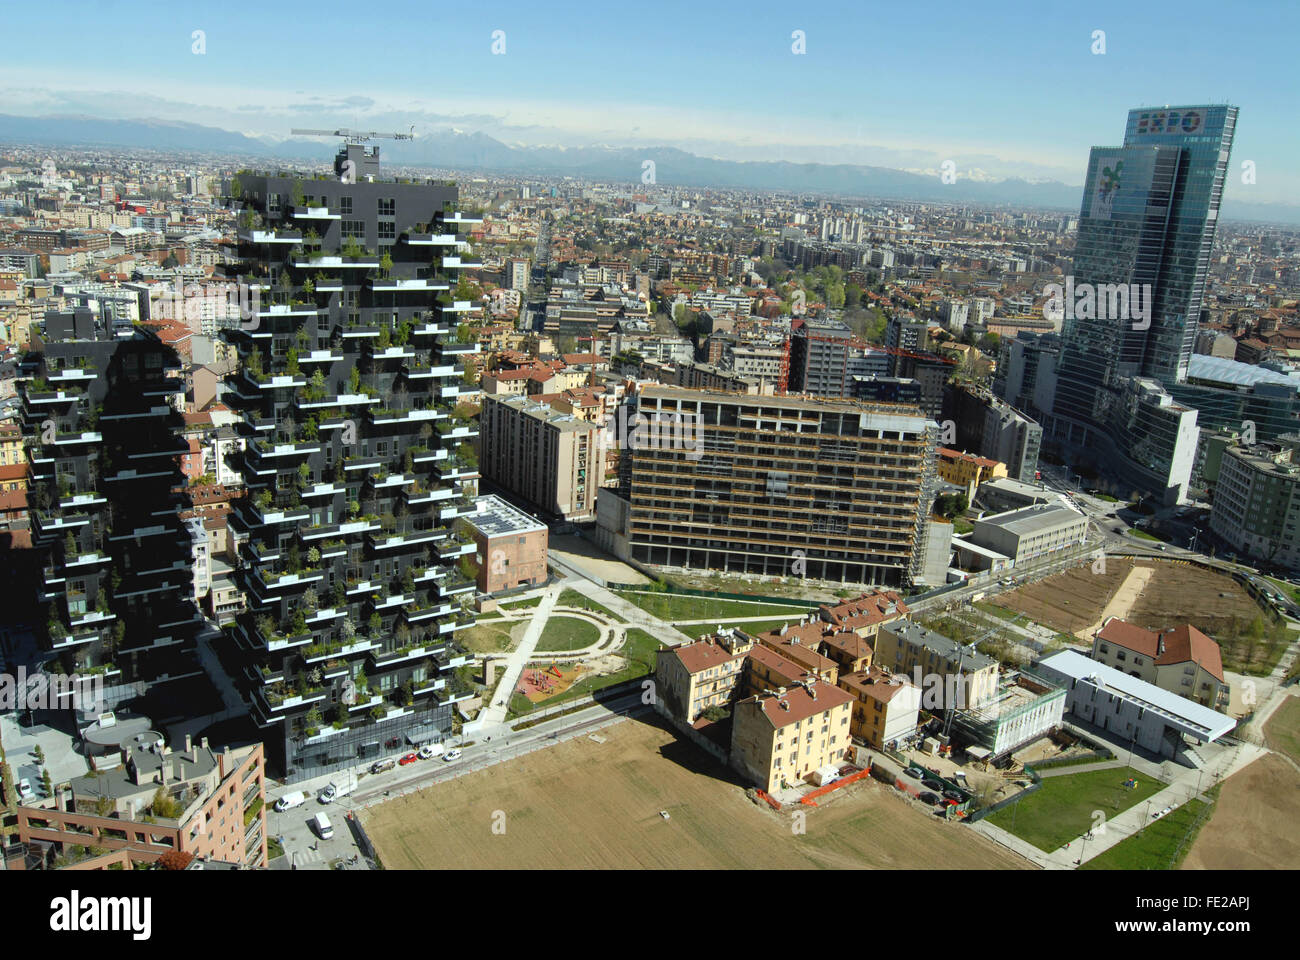 The new skyline of Milan, view from the Tower Unicredit, right The Vertical Forest project architect Boeri, left - Stock Image